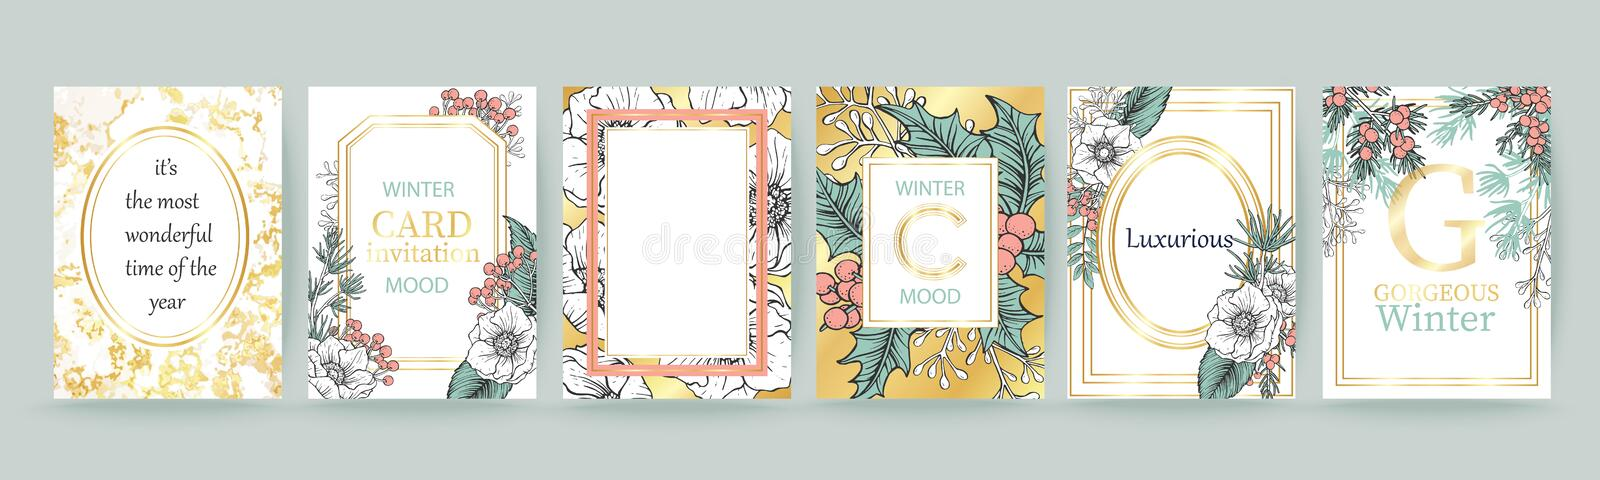 Winter holiday background, invitation. Wedding pattern design. Place for text. Merry Christmas and Happy New Year card. stock illustration